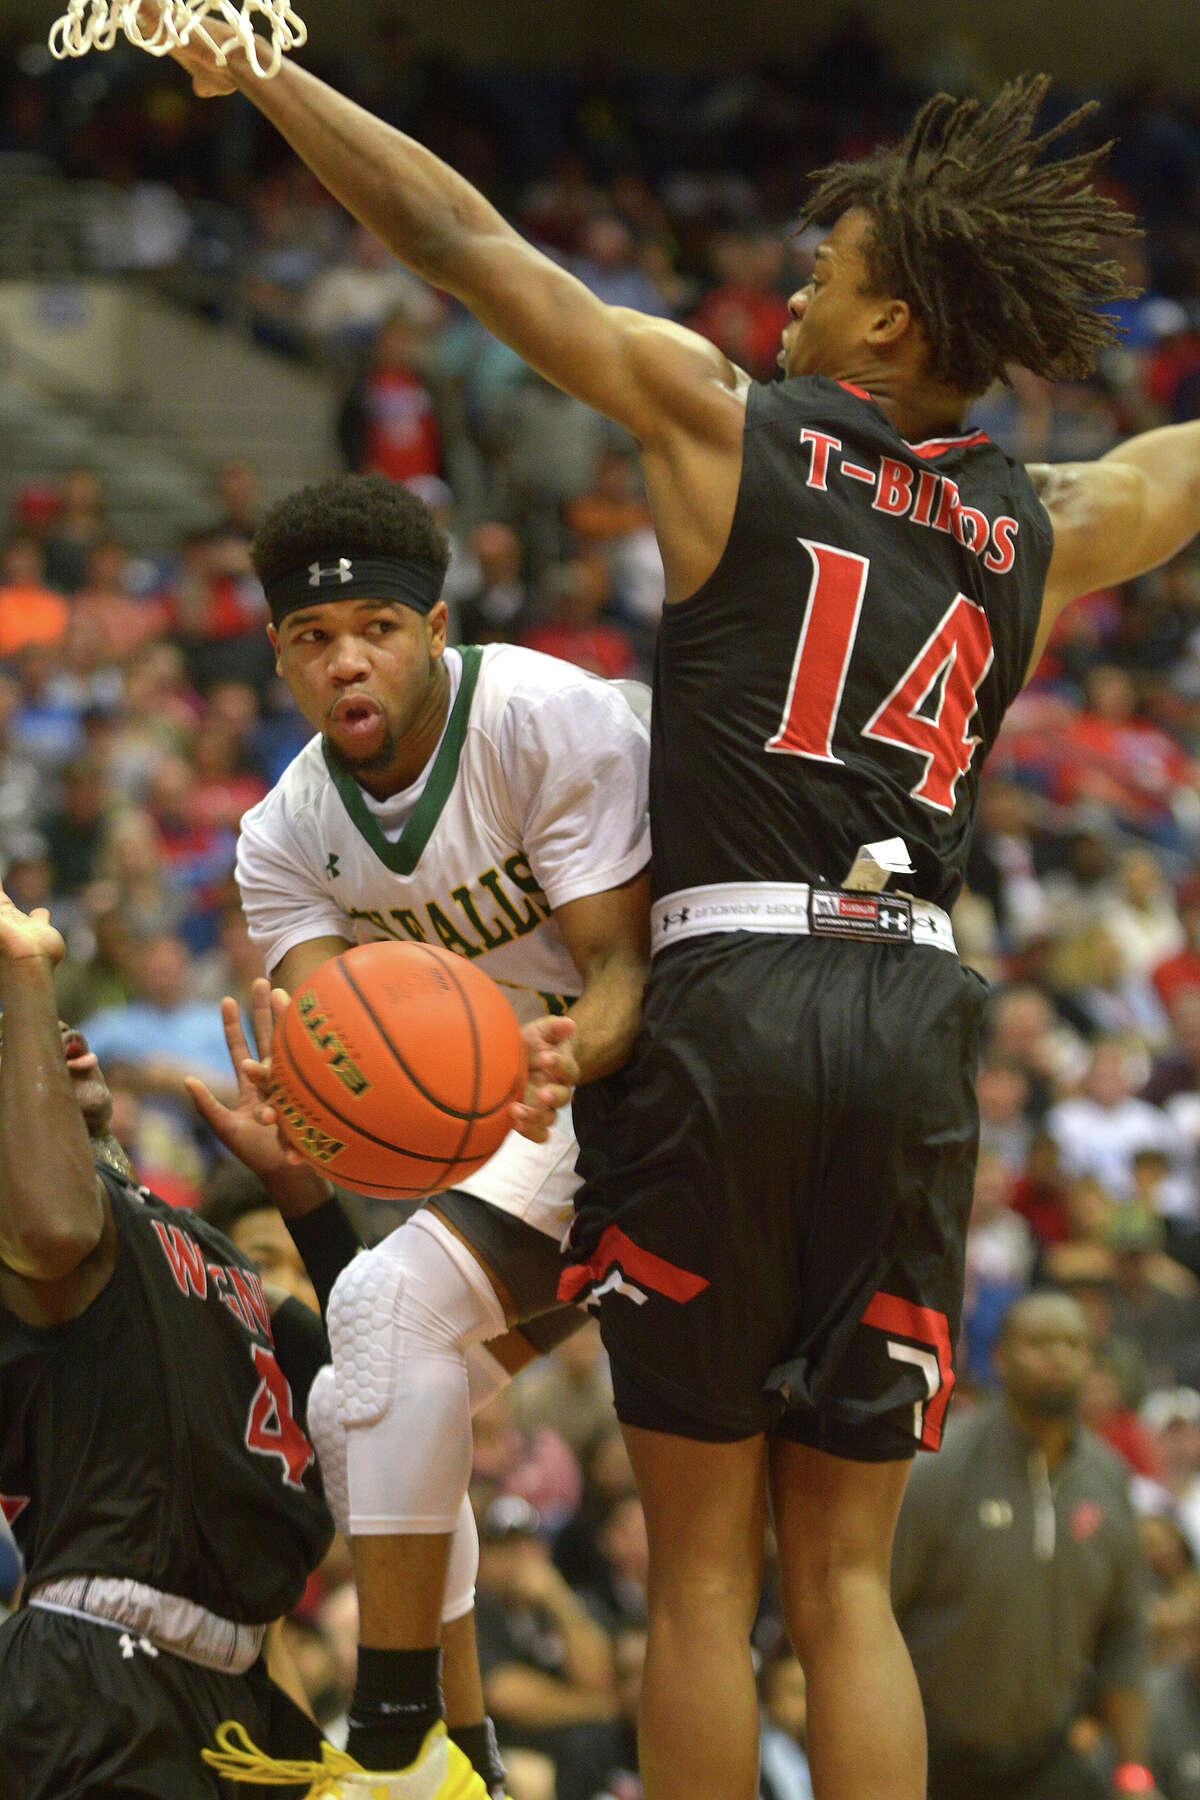 Cy Falls junior guard Trajan Wesley looks to dish the ball on a drive against San Antonio Wagner's Justice Tolbert (14) during the 2nd quarter of their Class 6A state final at the Alamodome in San Antonio on Saturday, March 11, 2017. (Photo by Jerry Baker/Freelance)